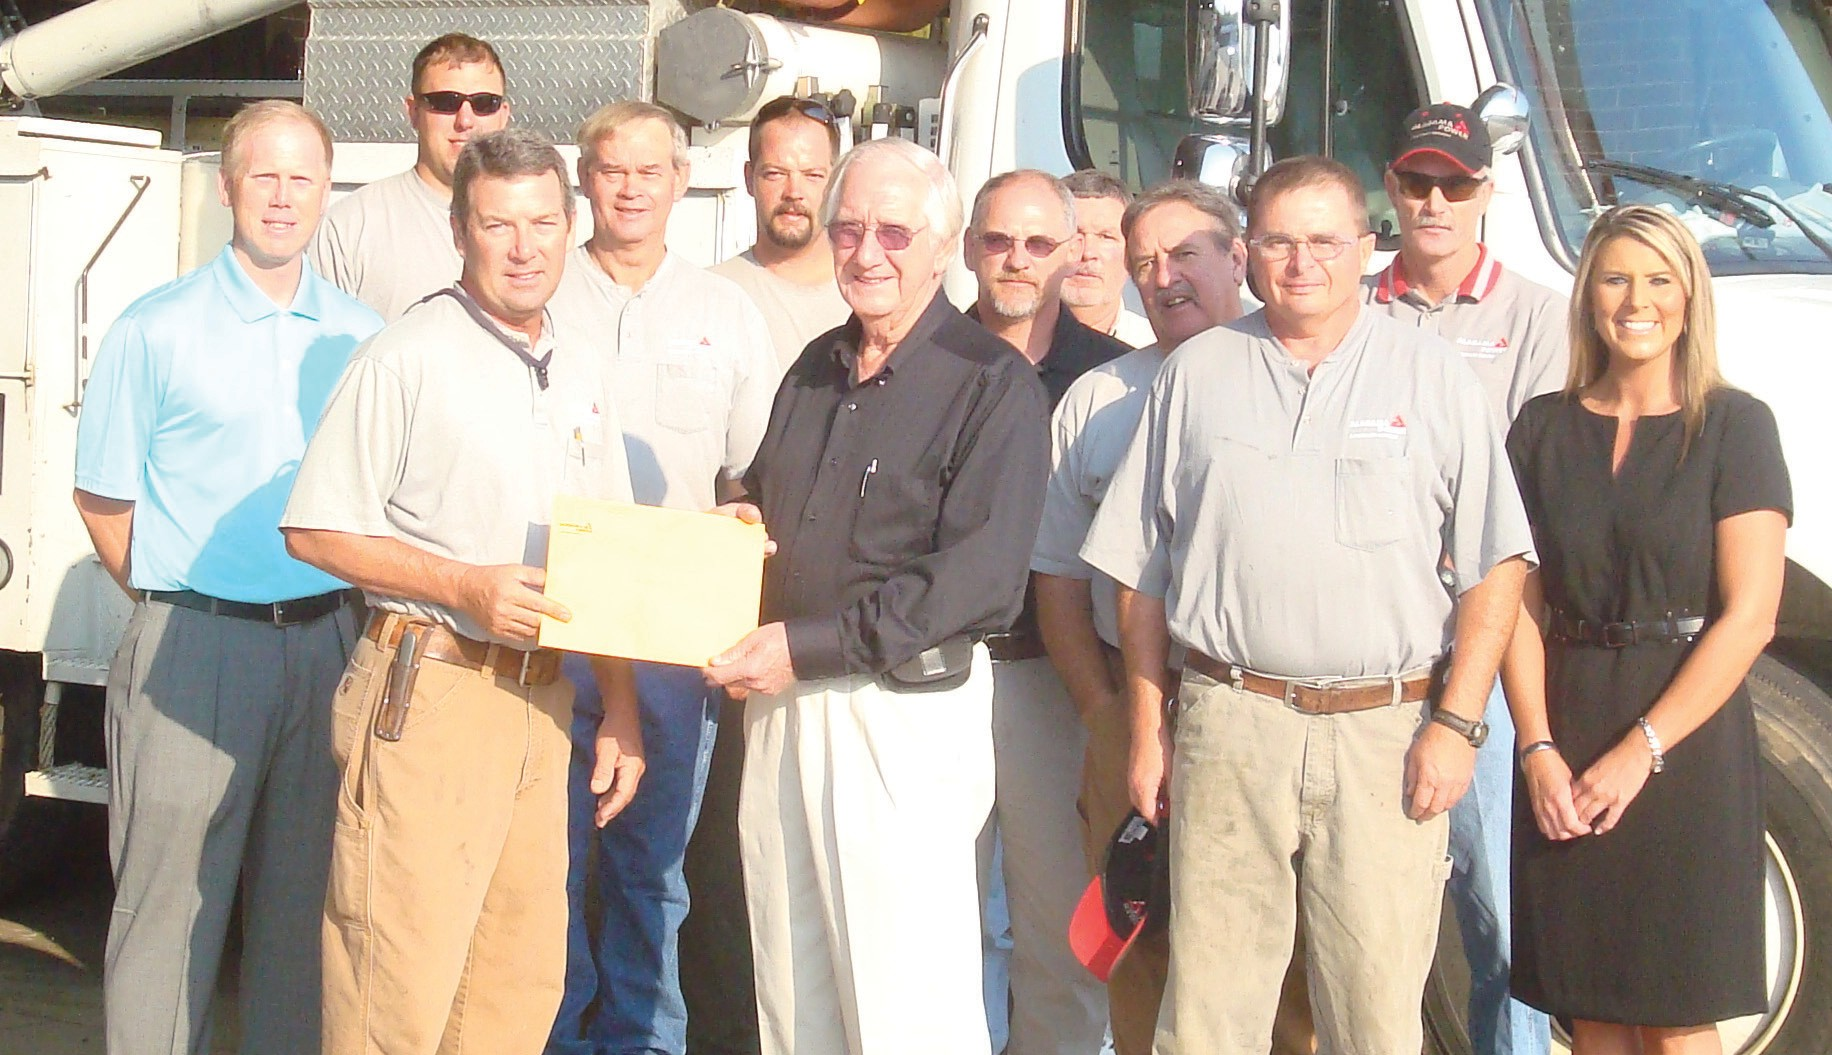 Alabama Power employees show their pride in giving back to tornado victims. Shown above are (front, from left) David Sloan, Bud Jones, and Dale Snead; (middle) Mark Usry, Doyle Blakely, Ricky Hall, Dan Little, and Kelley Cochran; (back) Roy King, Brandon Denney, Bruce Faust, and Troy Cornelius.